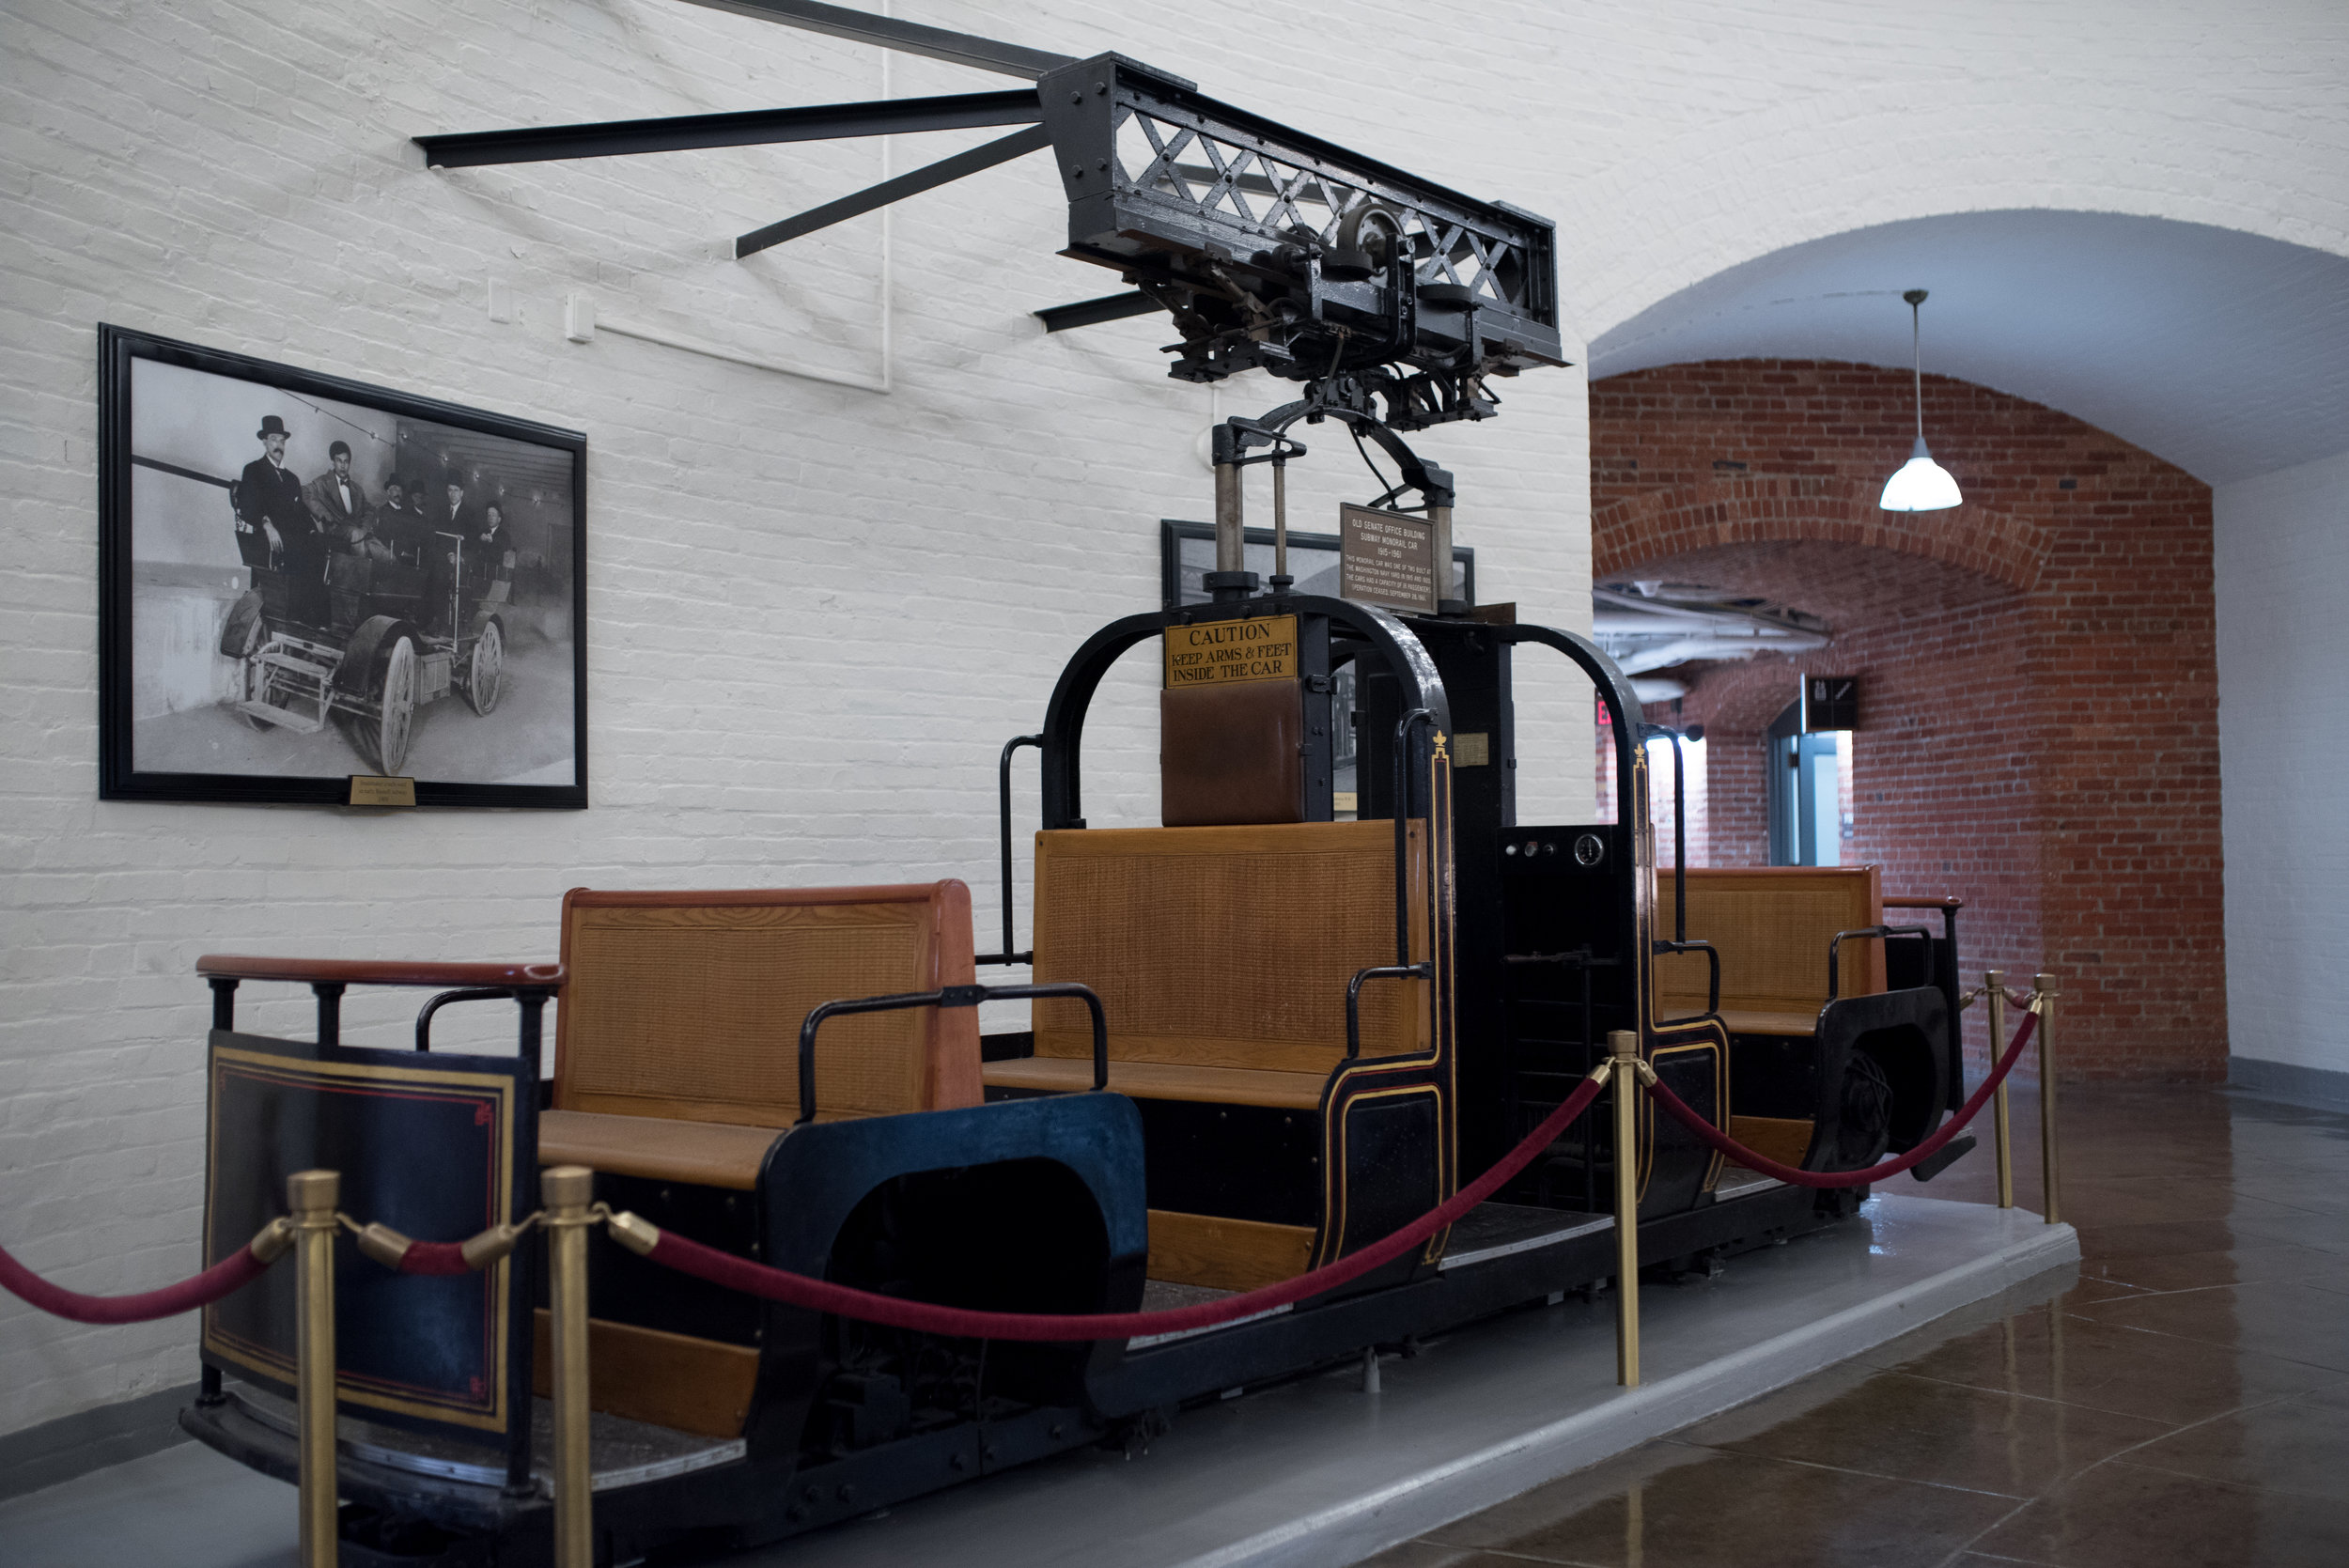 Original monorail cars that operated from 1915 to 1961.